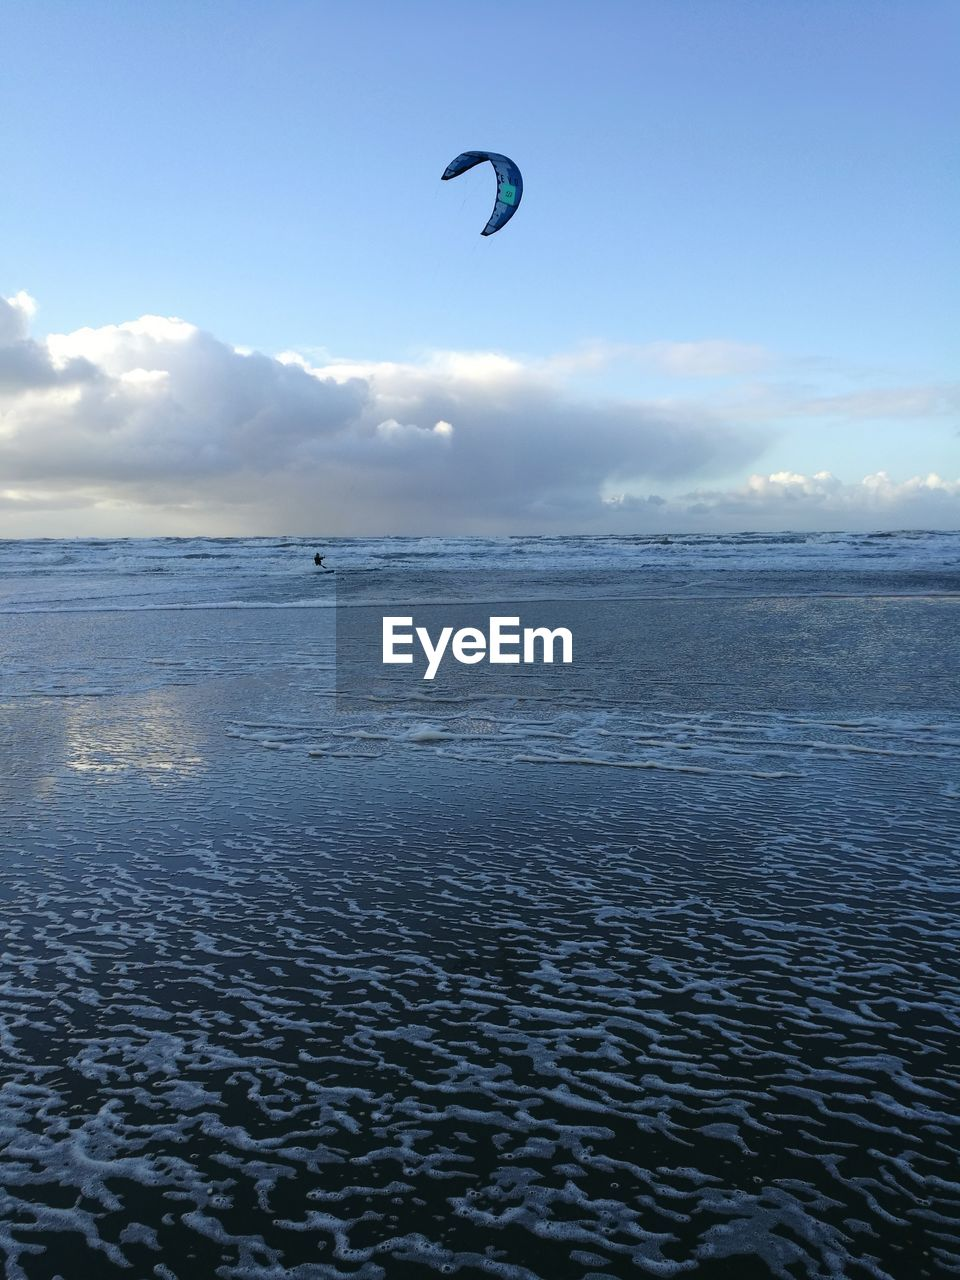 sea, sky, water, adventure, sport, extreme sports, beauty in nature, scenics - nature, waterfront, kiteboarding, unrecognizable person, horizon over water, parachute, cloud - sky, aquatic sport, horizon, beach, nature, paragliding, outdoors